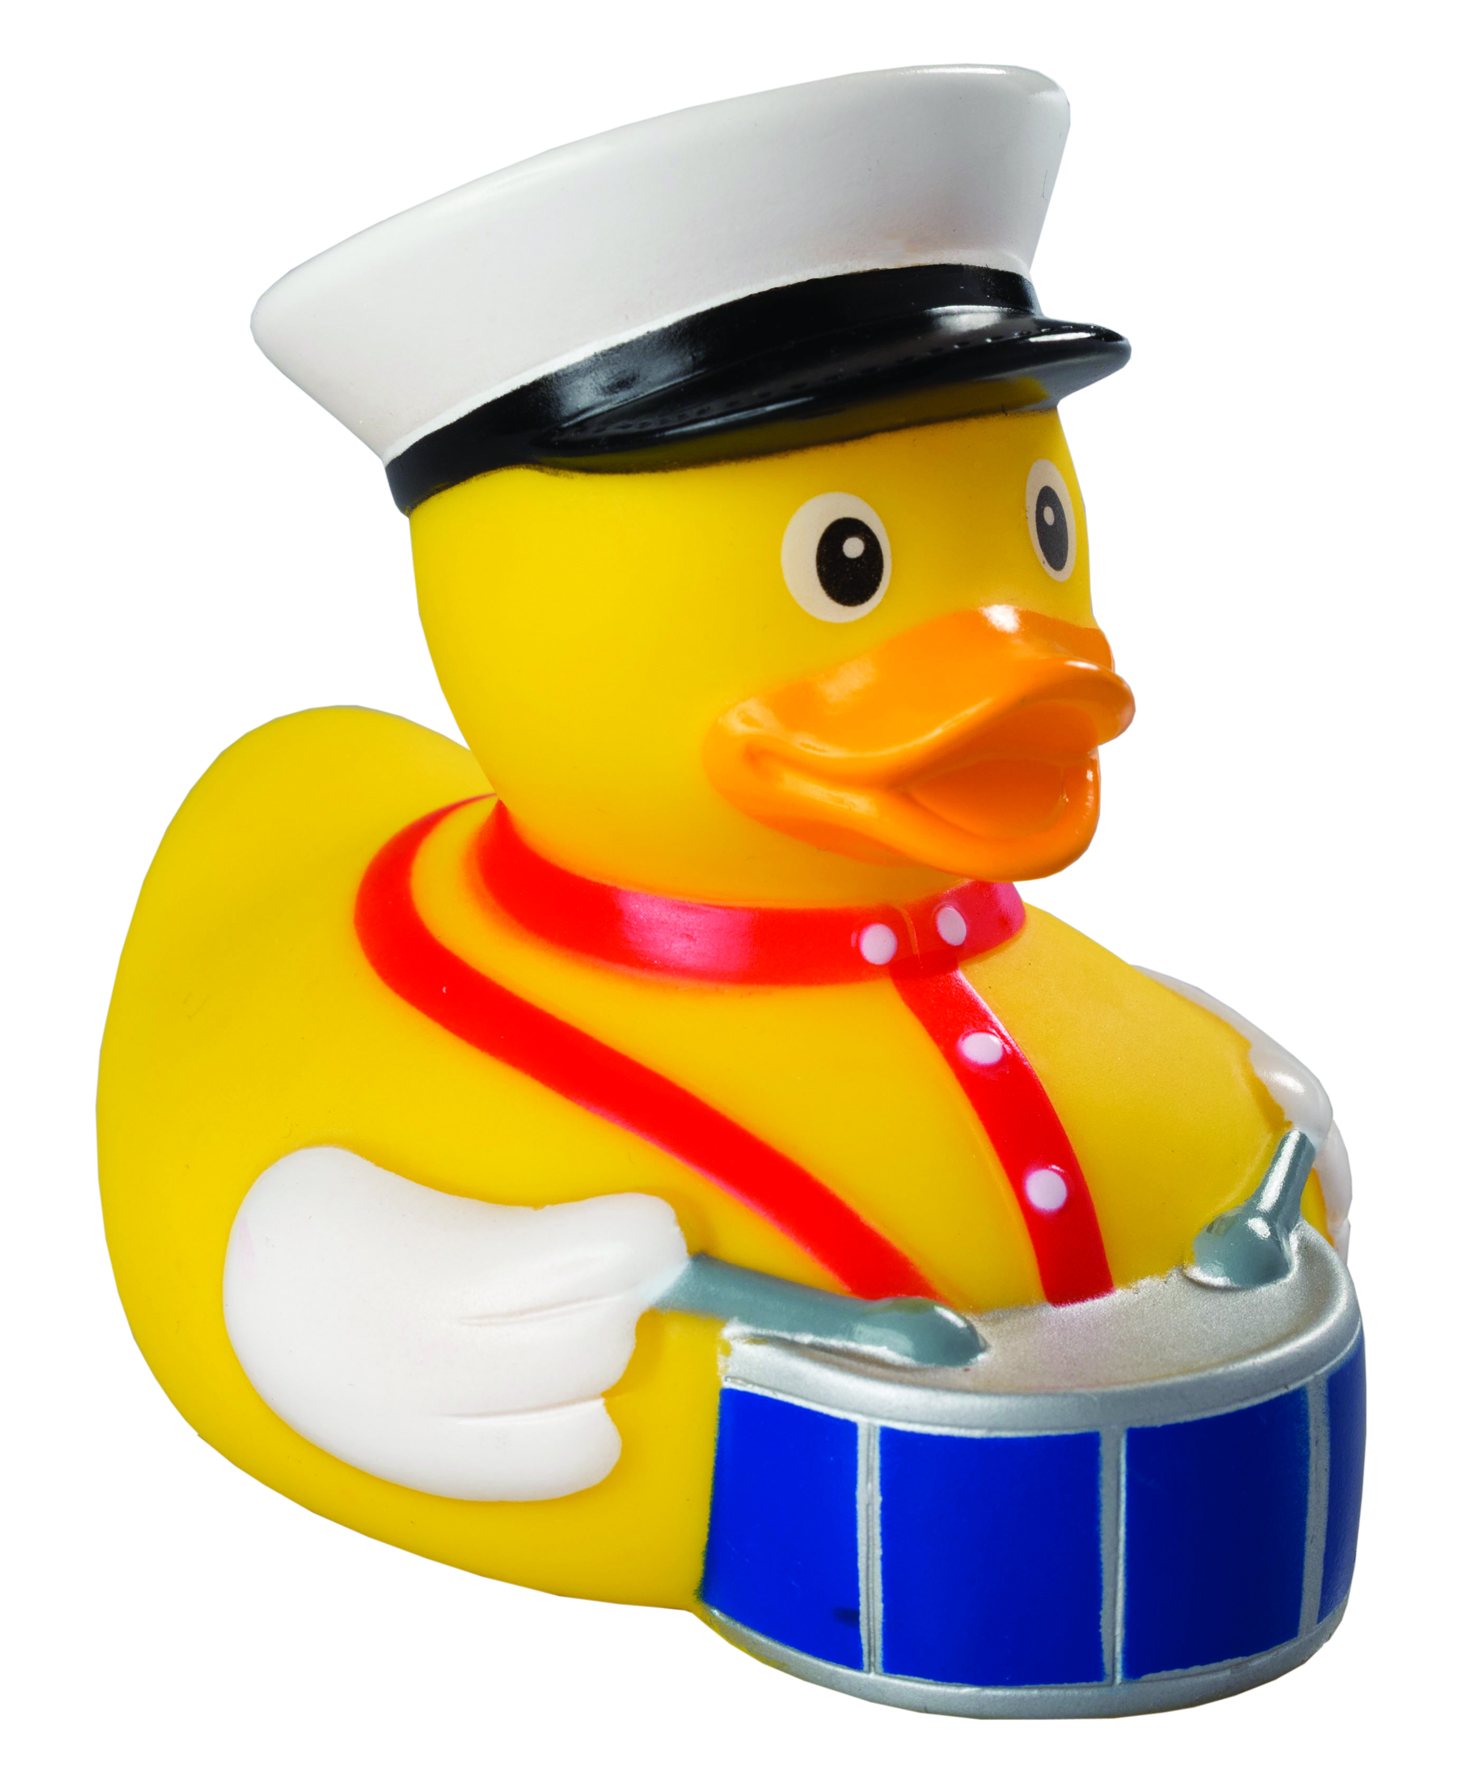 drummer rubber duck buy premium rubber ducks online world wide